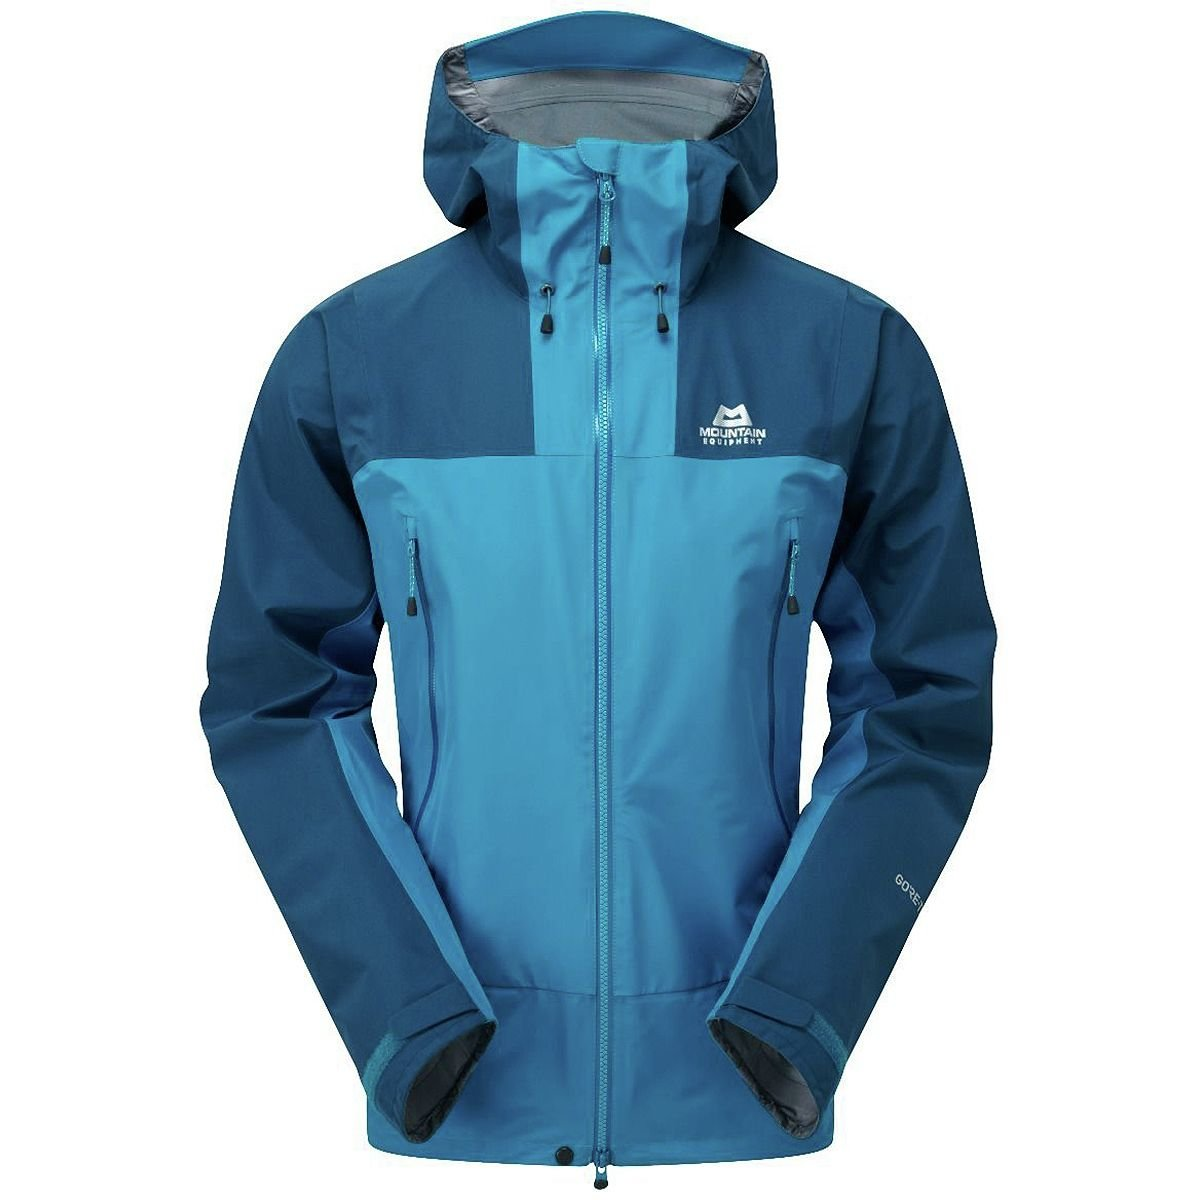 Mountain Equipment Quarrel Jacket – Men 's B075PFZG2N Small|Lagoon Blue/Marine Lagoon Blue/Marine Small